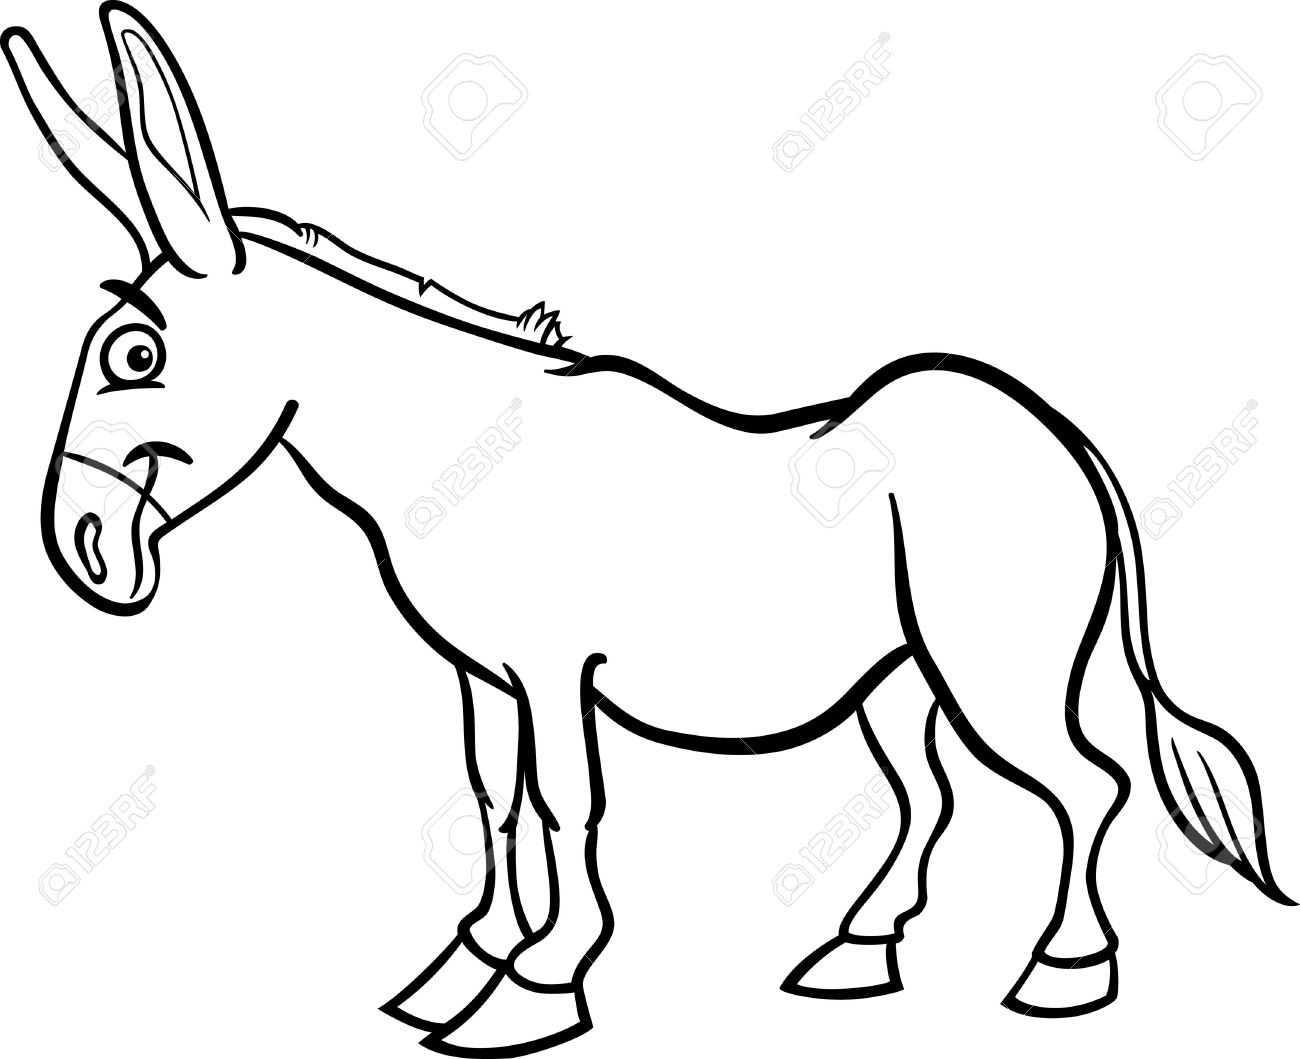 Donkey Clipart Black And White